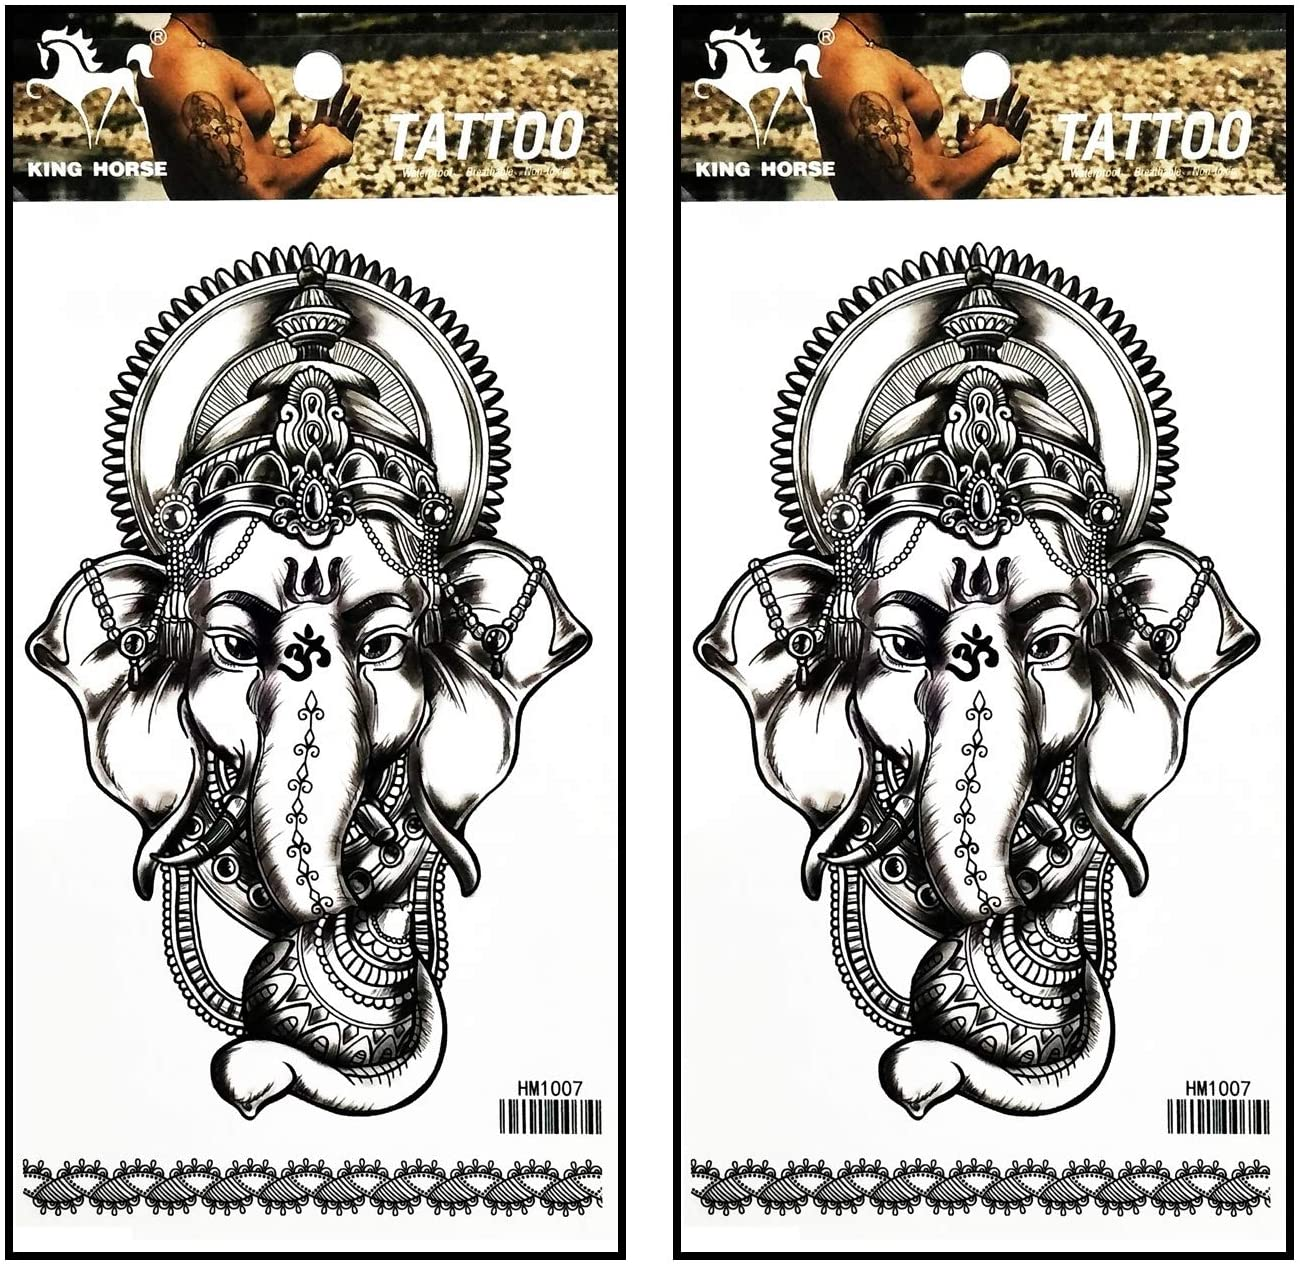 Tattoos 2 Sheets Elephant Buddha Ganesh Flowers Henna Temporary Tattoos Body Art Stickers Fake Waterproof Removable Stickers Party for Teens Men Women